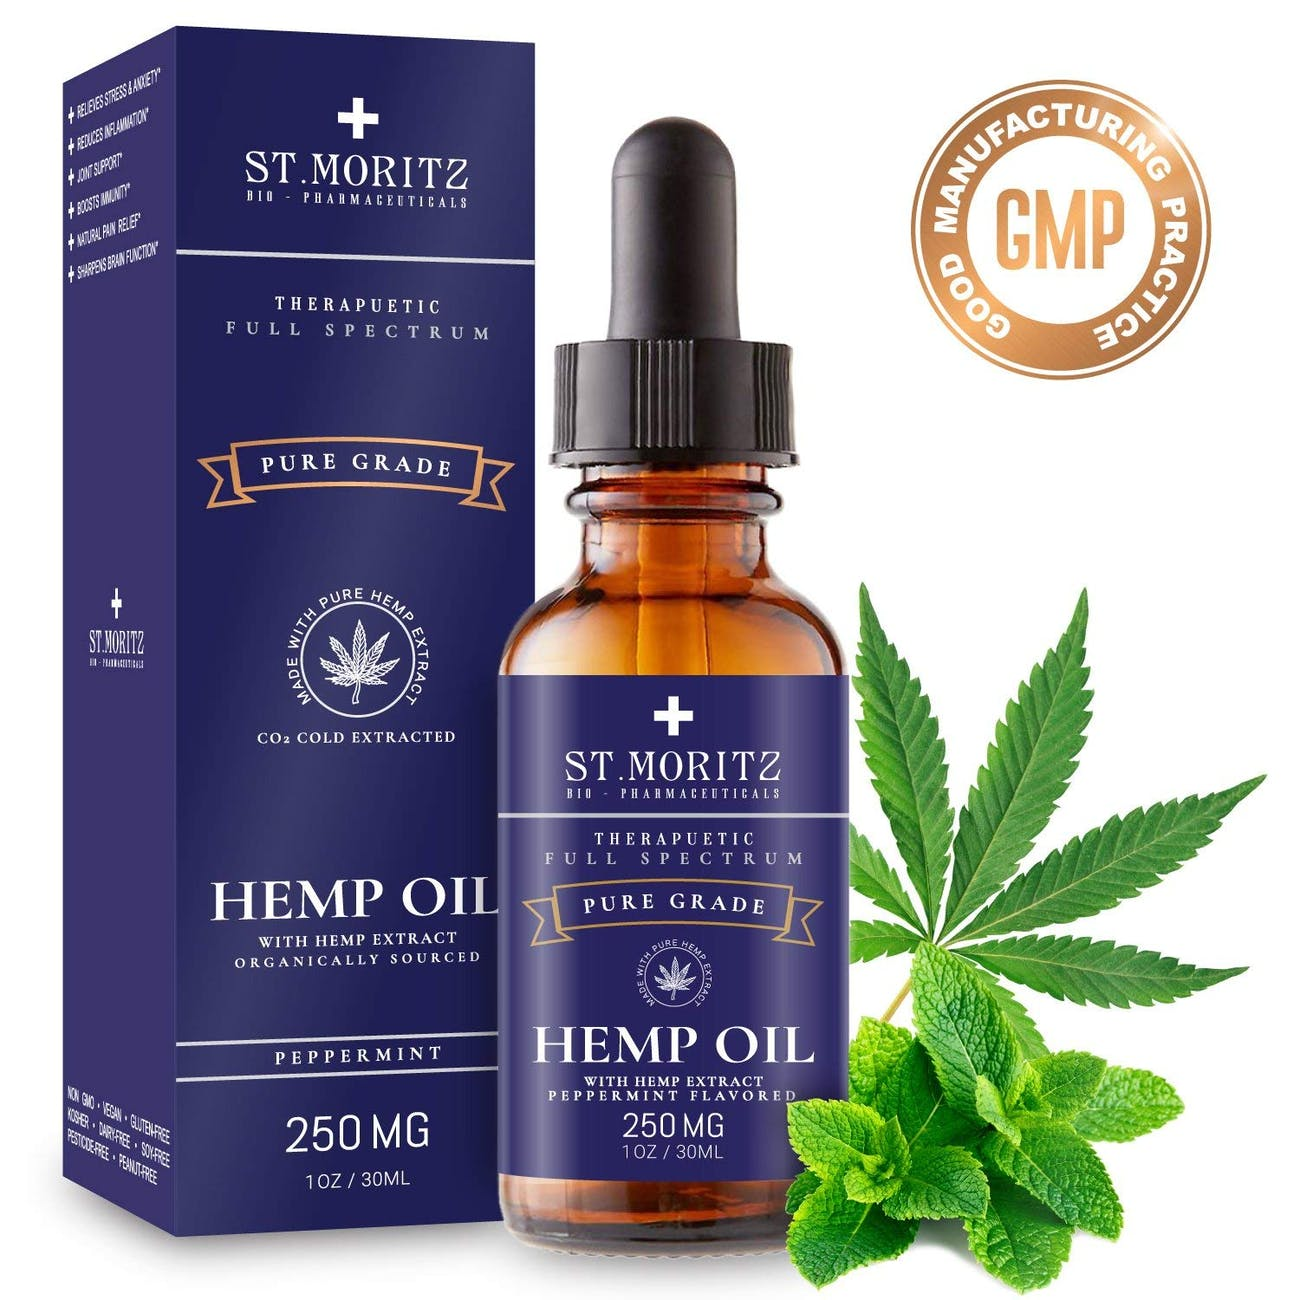 10 Hemp Oil Products on Amazon for Curious First-Time Buyers